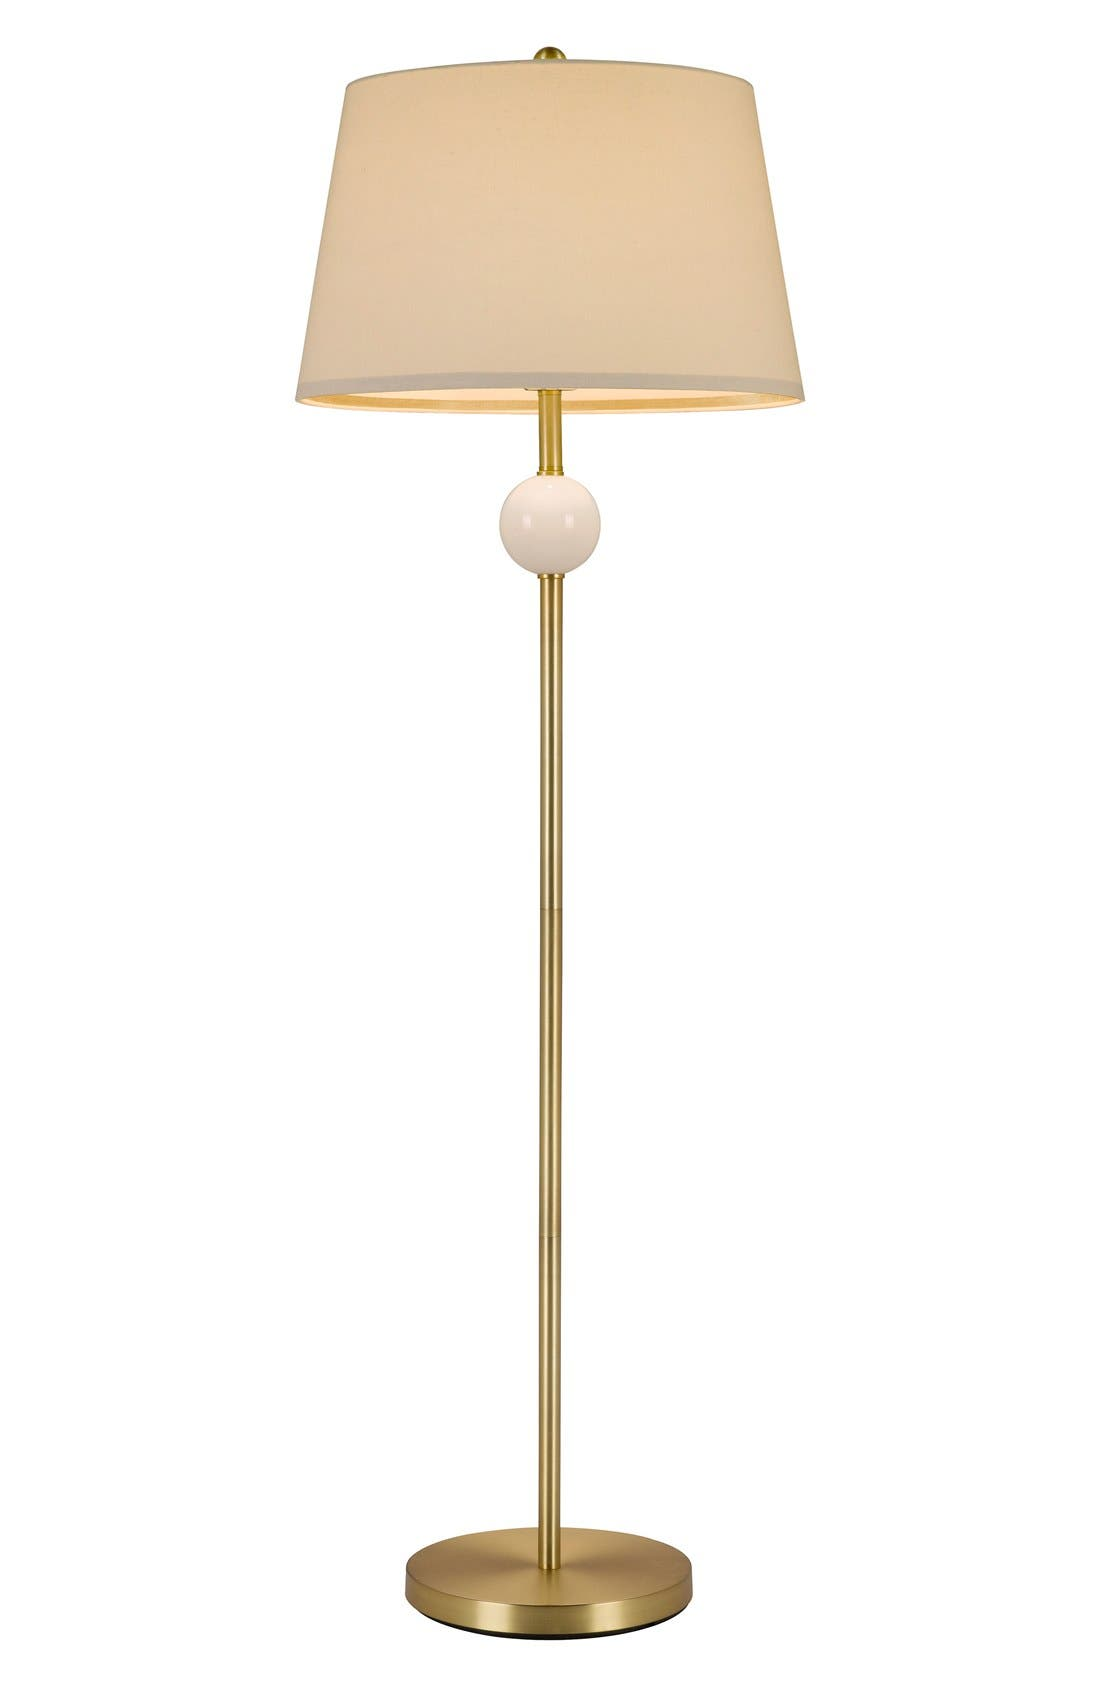 Main Image - cupcakes and cashmere Stacked Ball Floor Lamp